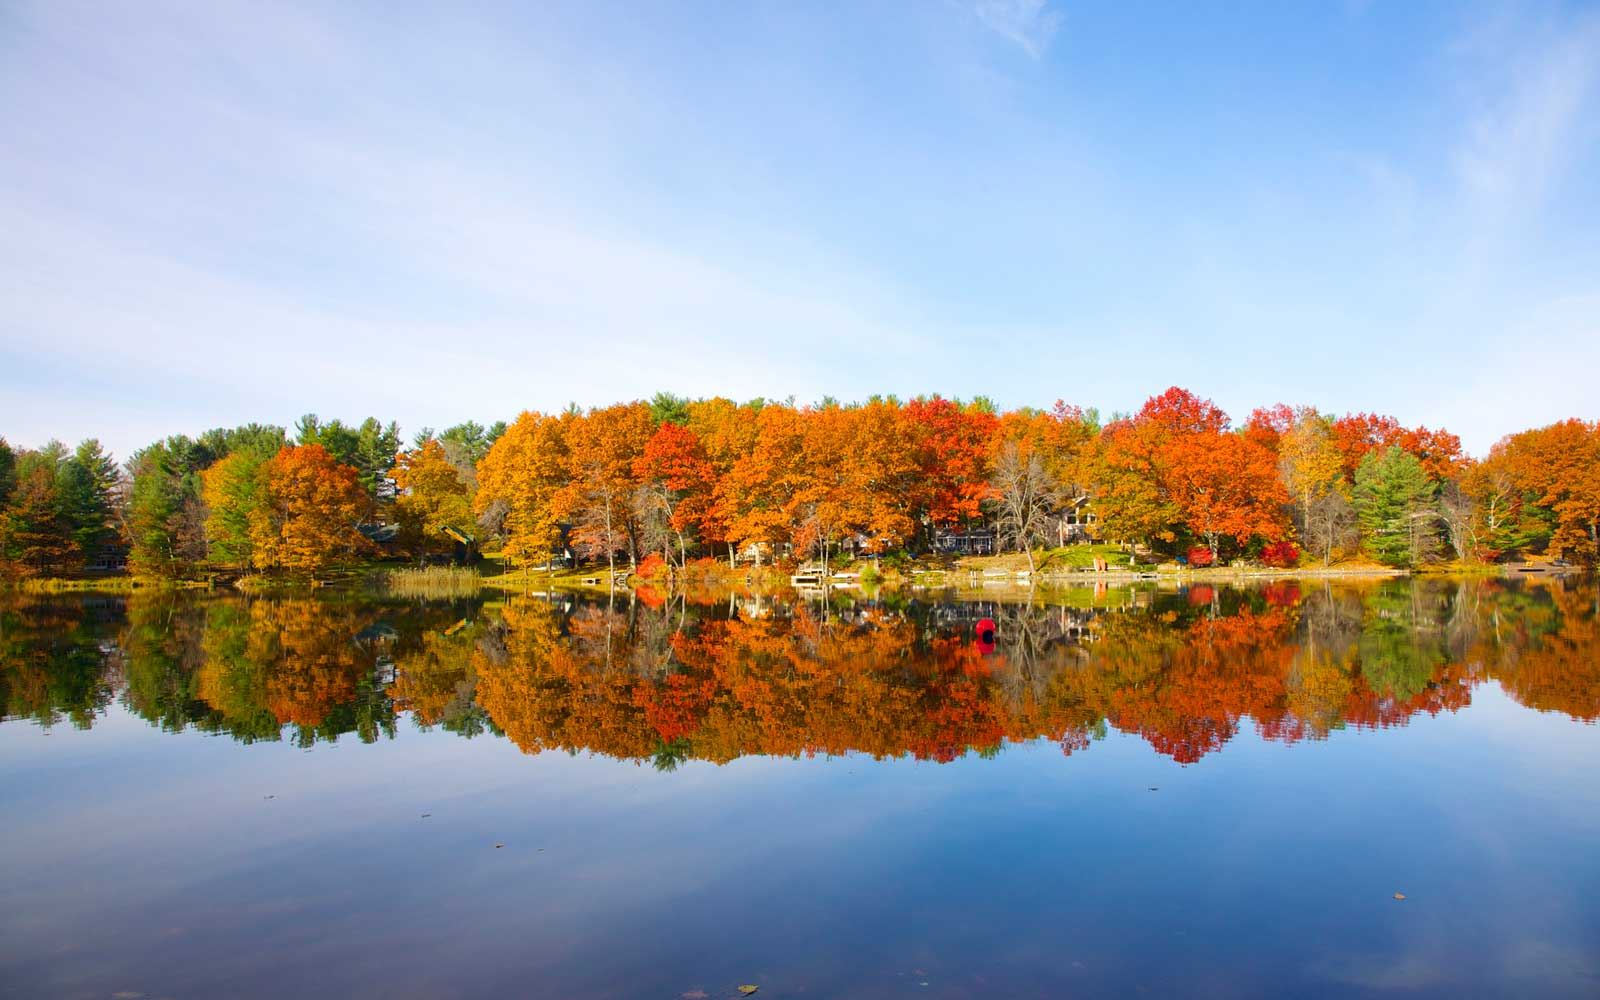 Lakeside trees with leaves changing to oranges and reds in early fall, Columbia County, New York State, USA.